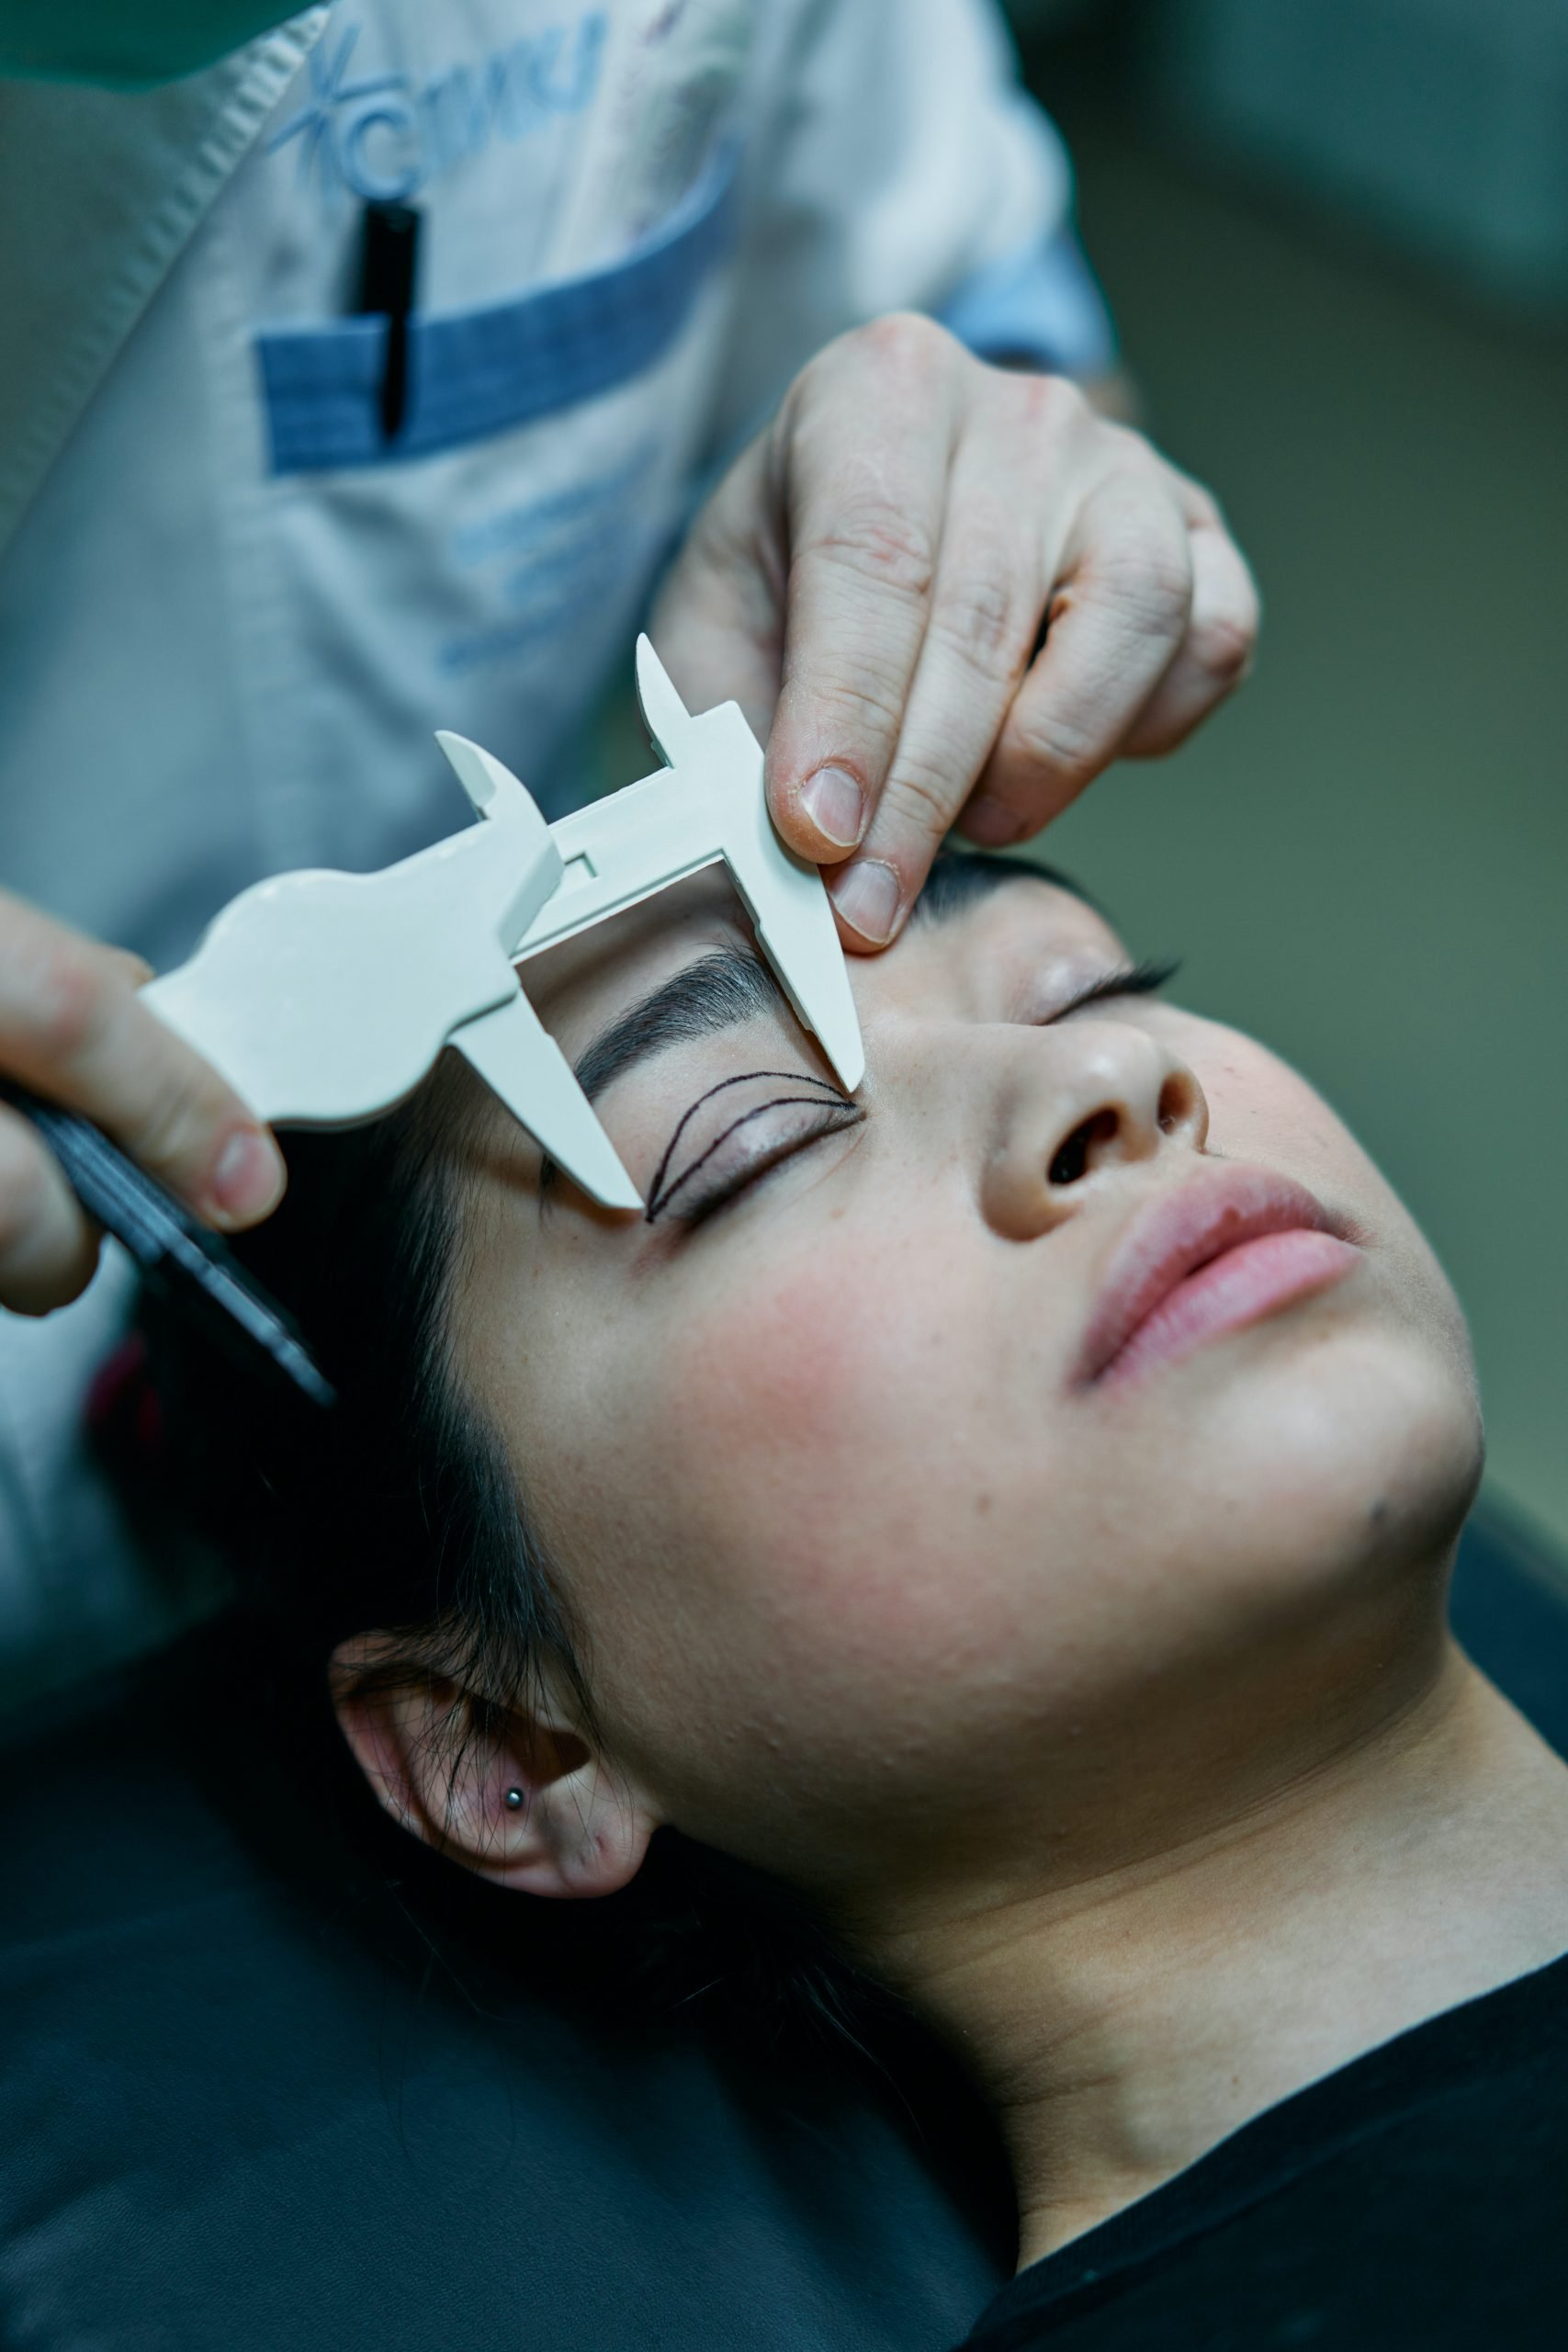 Woman receiving plastic surgery consultation on eyes.